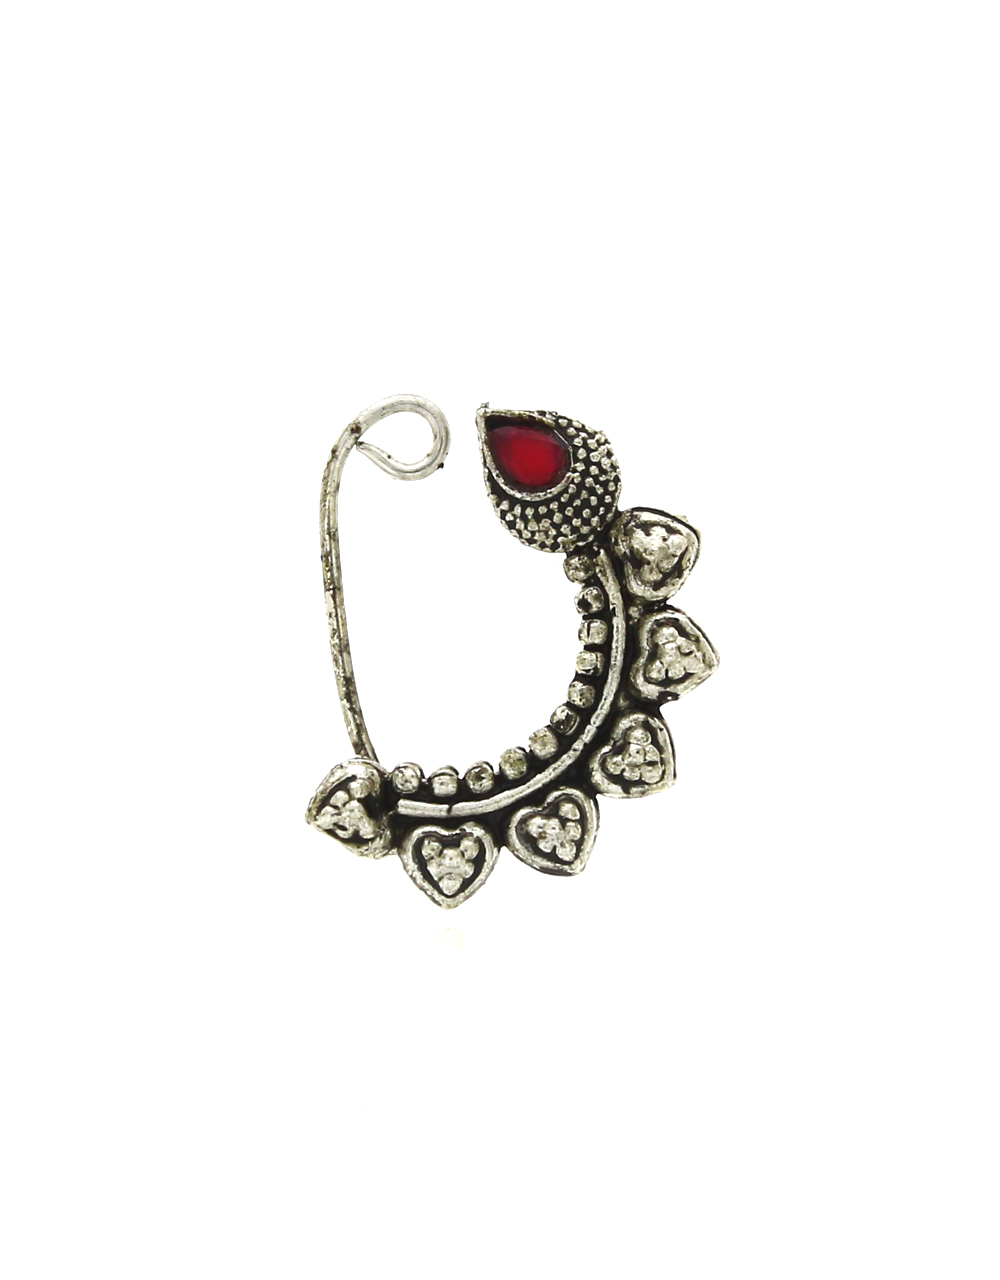 Jewellery Silver Oxidized Finish Adorable Clip On Nath For Women {Press On}